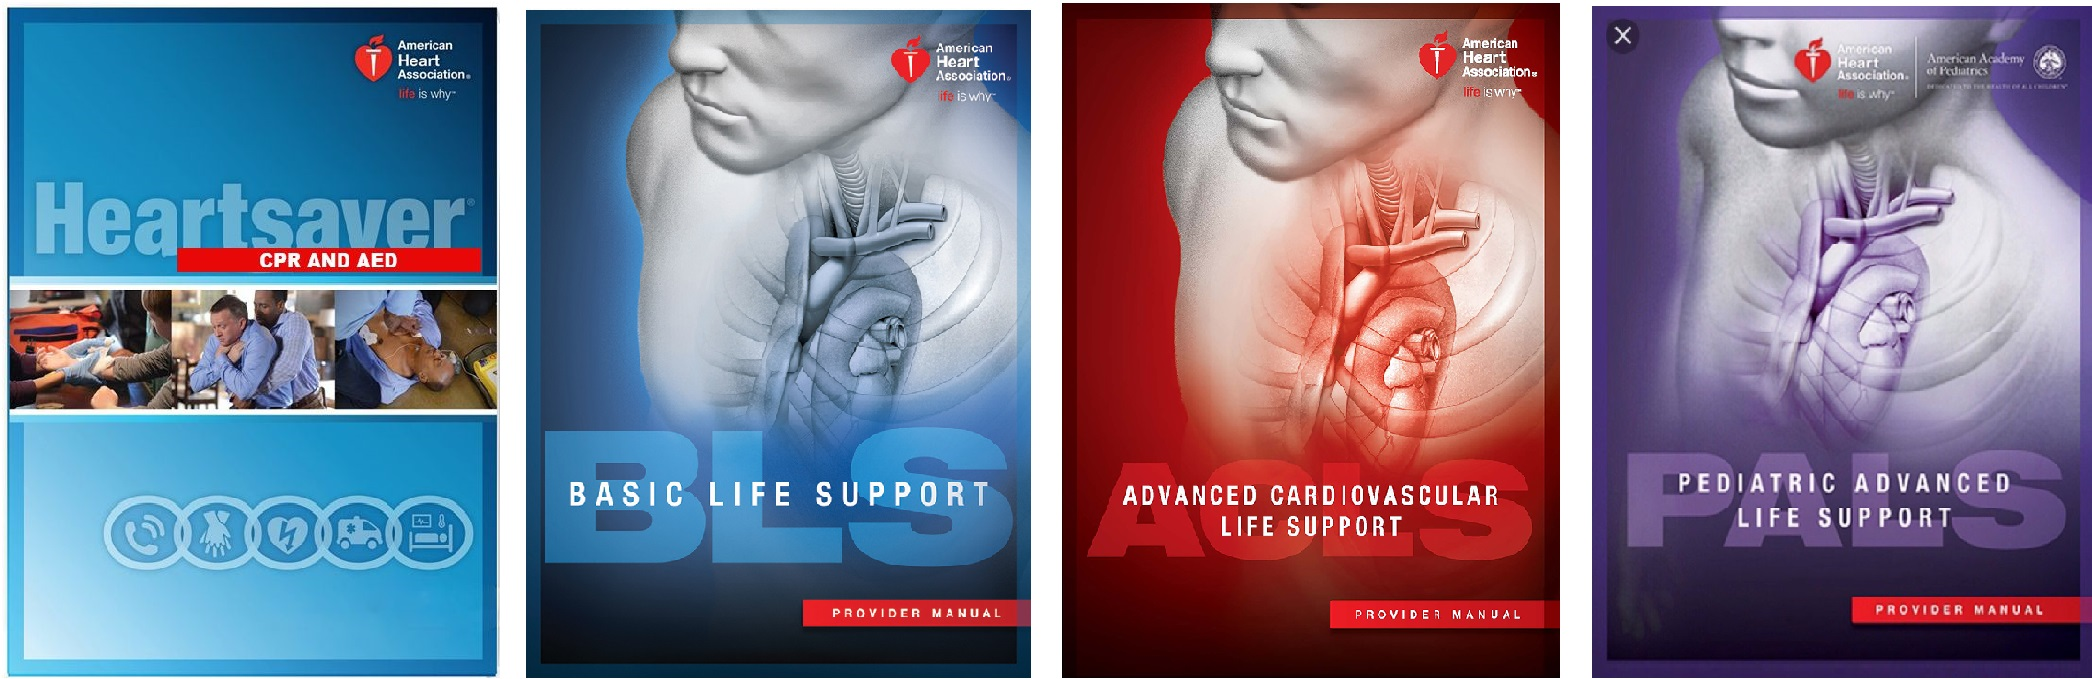 Cover images of the American Heart Association Manuals